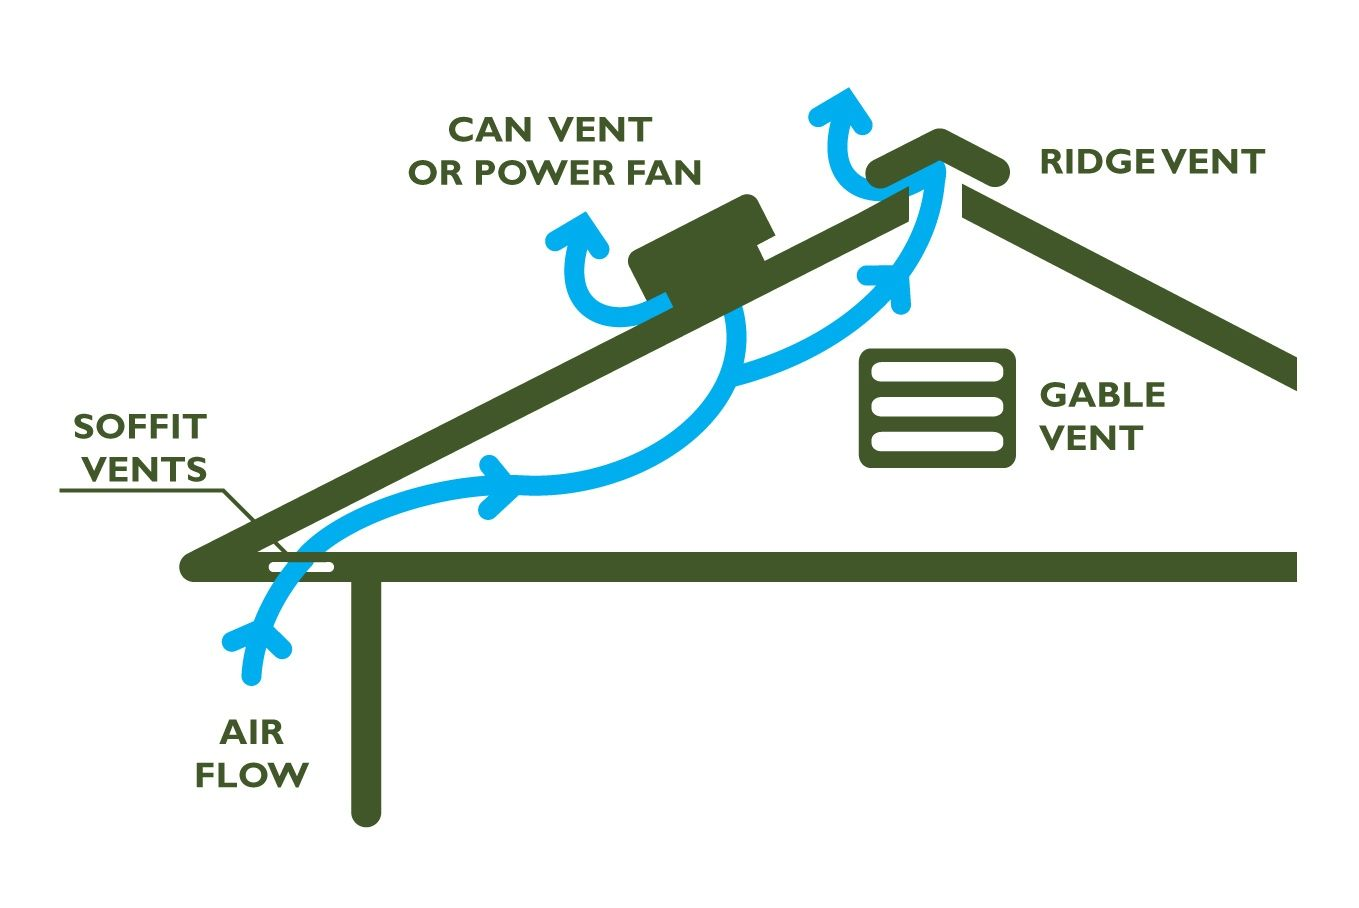 Add ventilation your roof's attic space.